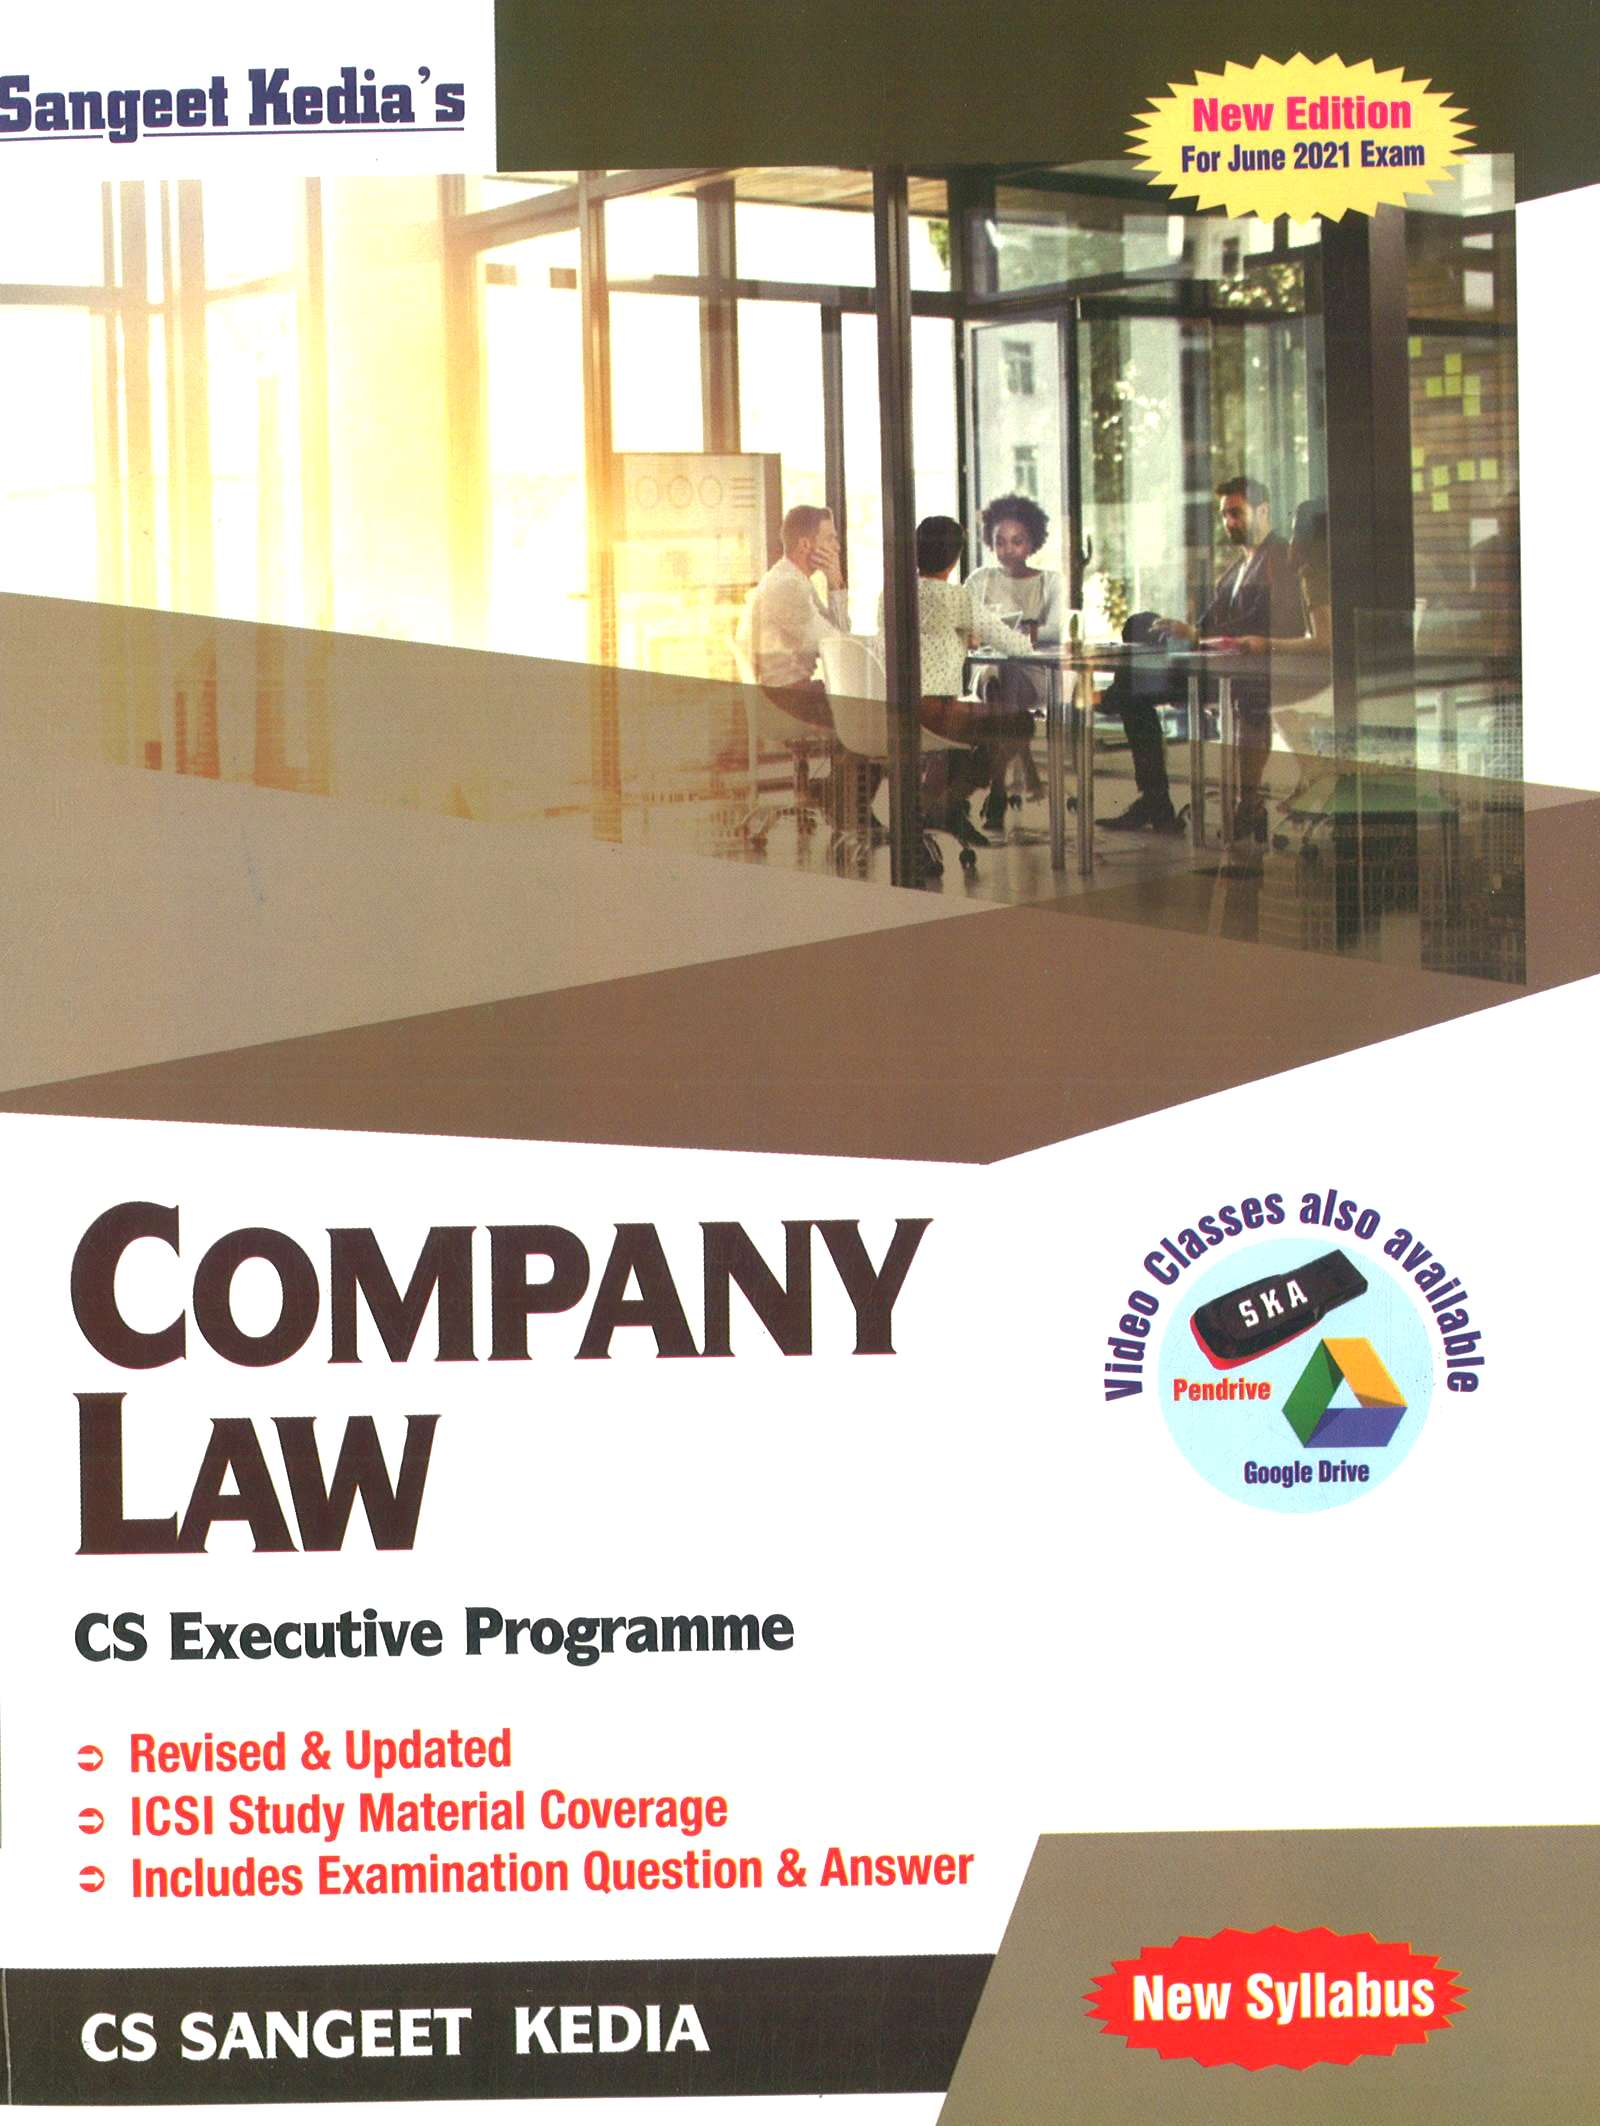 Pooja Law House For CS Executive Company Law new syllabus by Sangeet Kedia (Pooja Law House Publishing) for 2021 exams